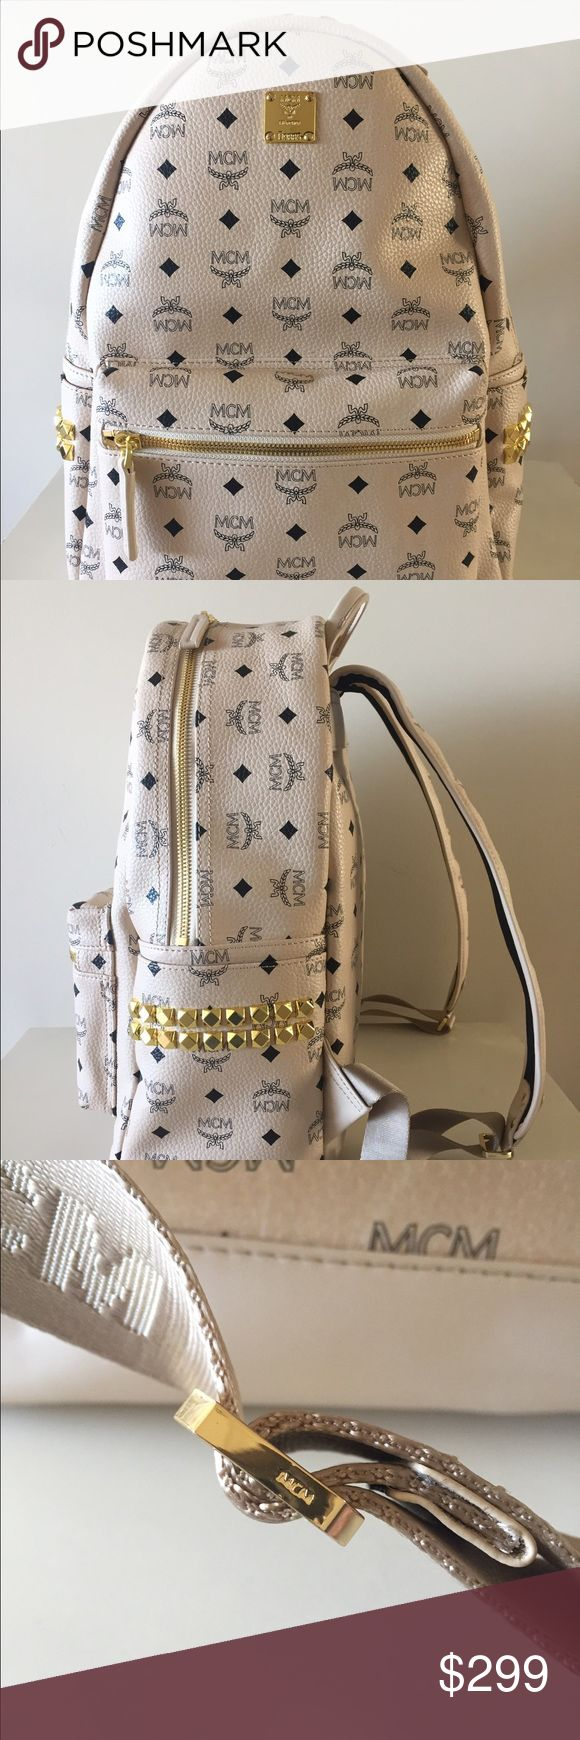 MCM Backpack Beige Medium MCM Bag 100% Authentic MCM Backpack Beige Medium MCM Bag 100% Authentic Guaranteed. If you like this, you'll definitely love my other listings. check em out ^_^ MCM Bags Backpacks